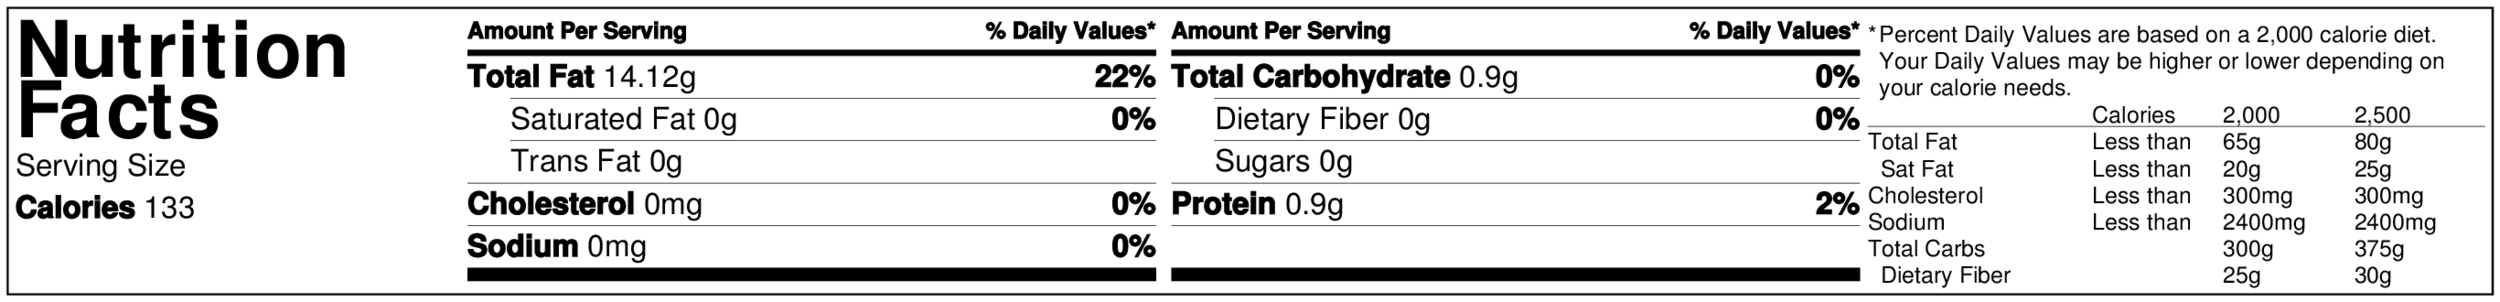 NutritionLabel (1).png